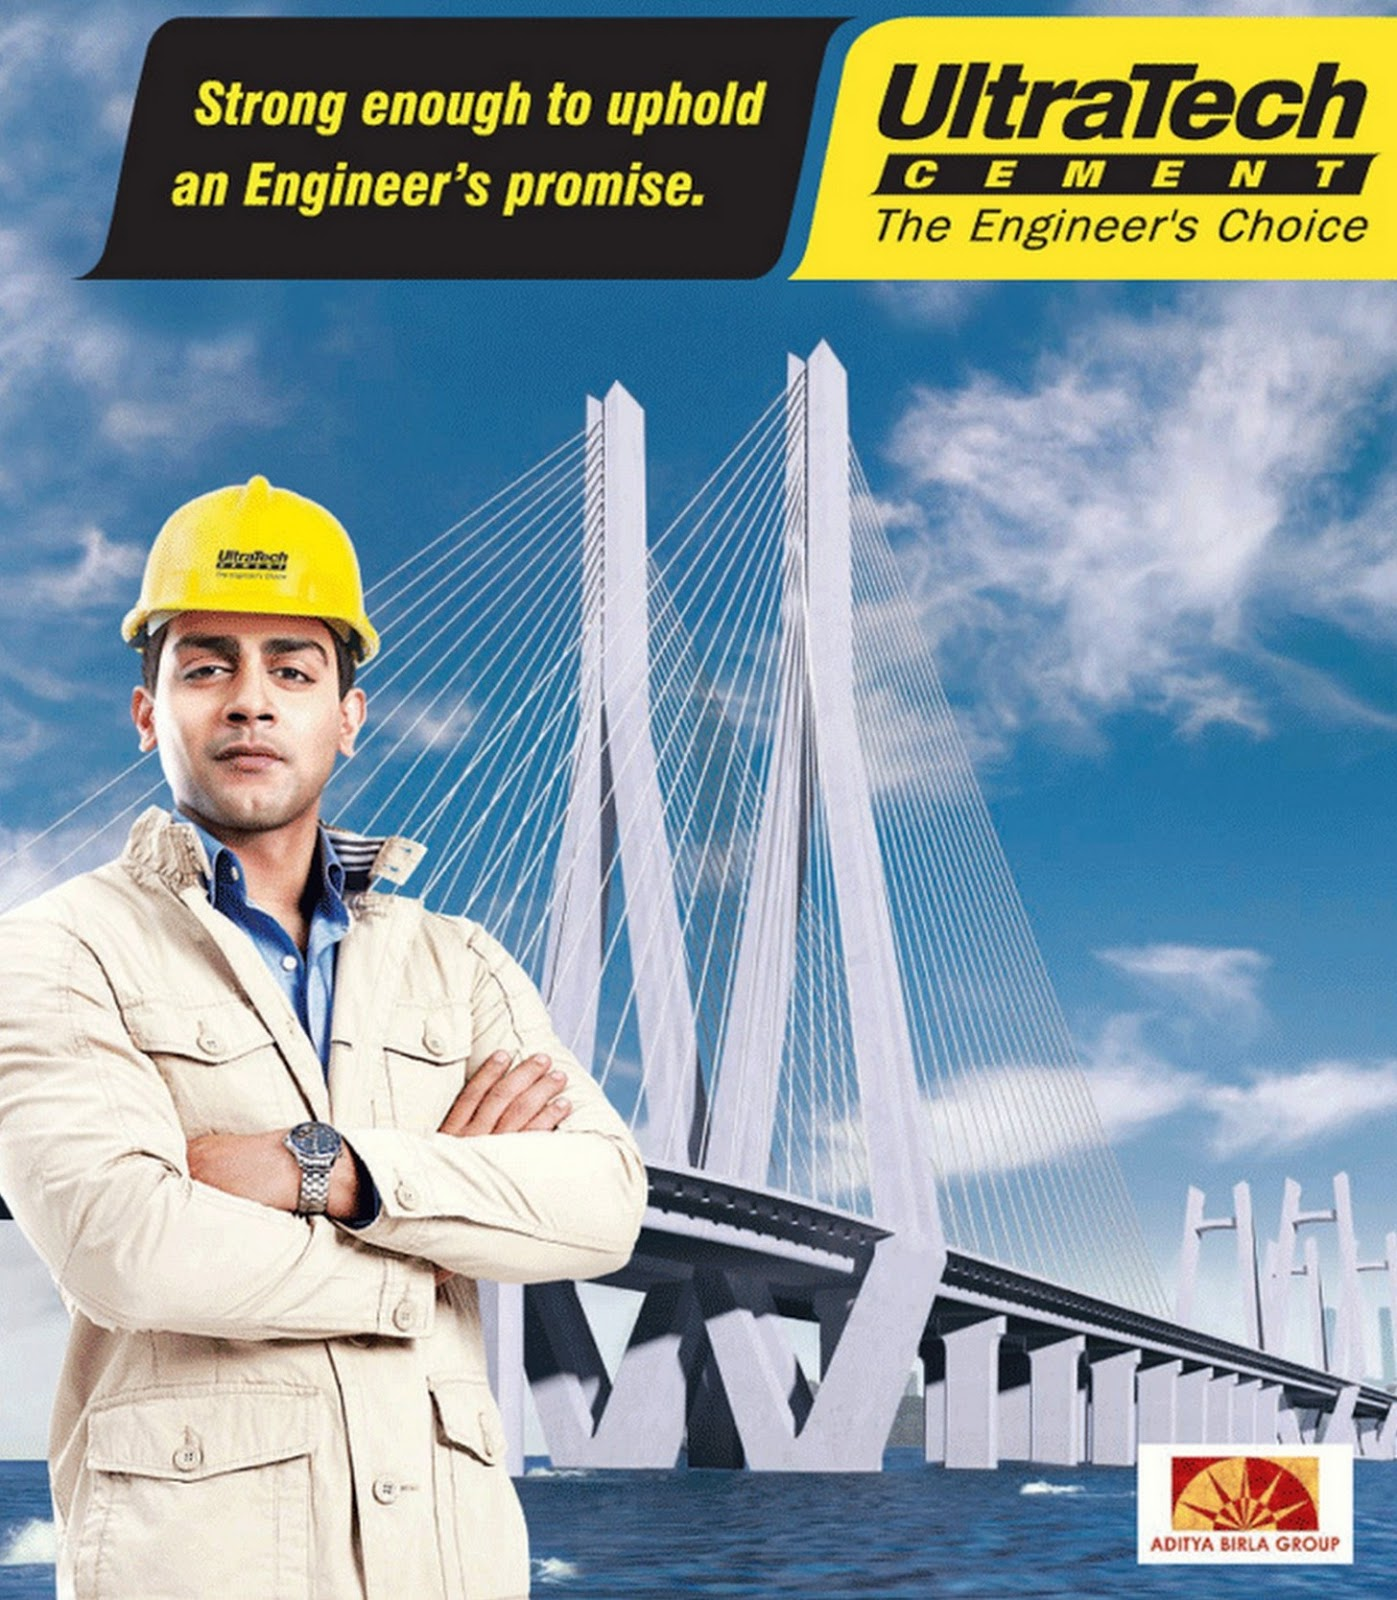 Ultra Tech Cement In Bangalore : Ultra tech cement job recruitment for civil engineers in